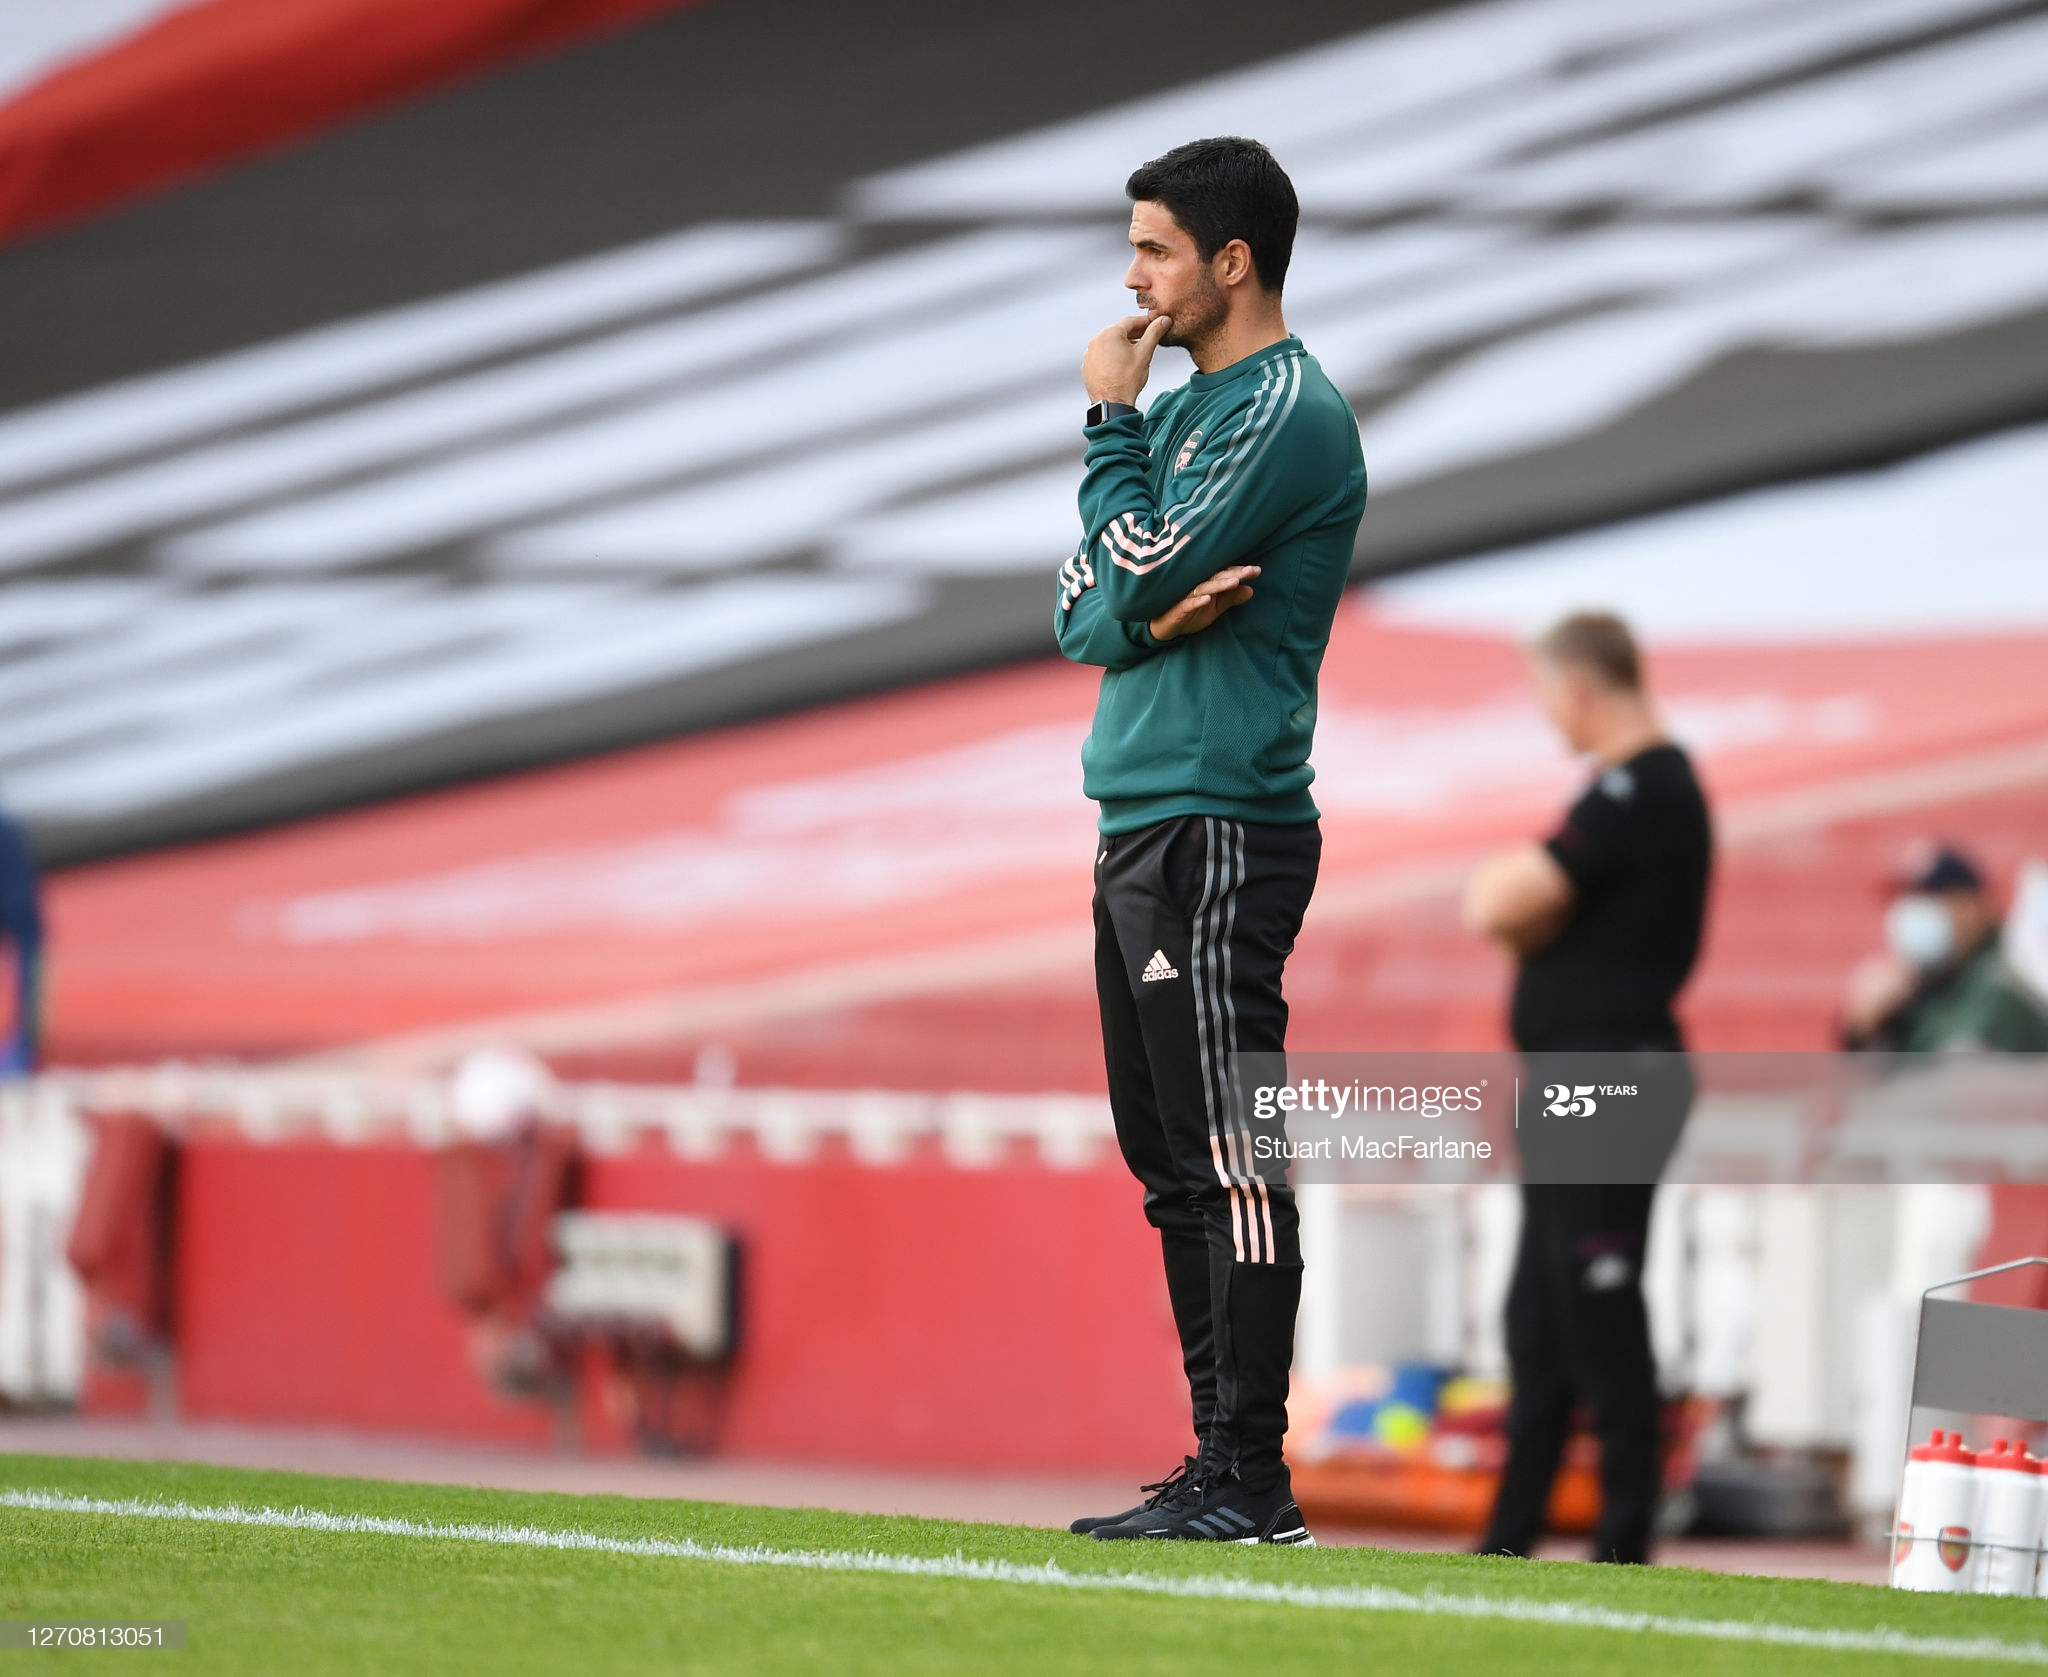 Arteta discloses Arsenal stand in the transfer market after emerging new office as Team managerArteta discloses Arsenal stand in the transfer market after emerging new office as Team manager